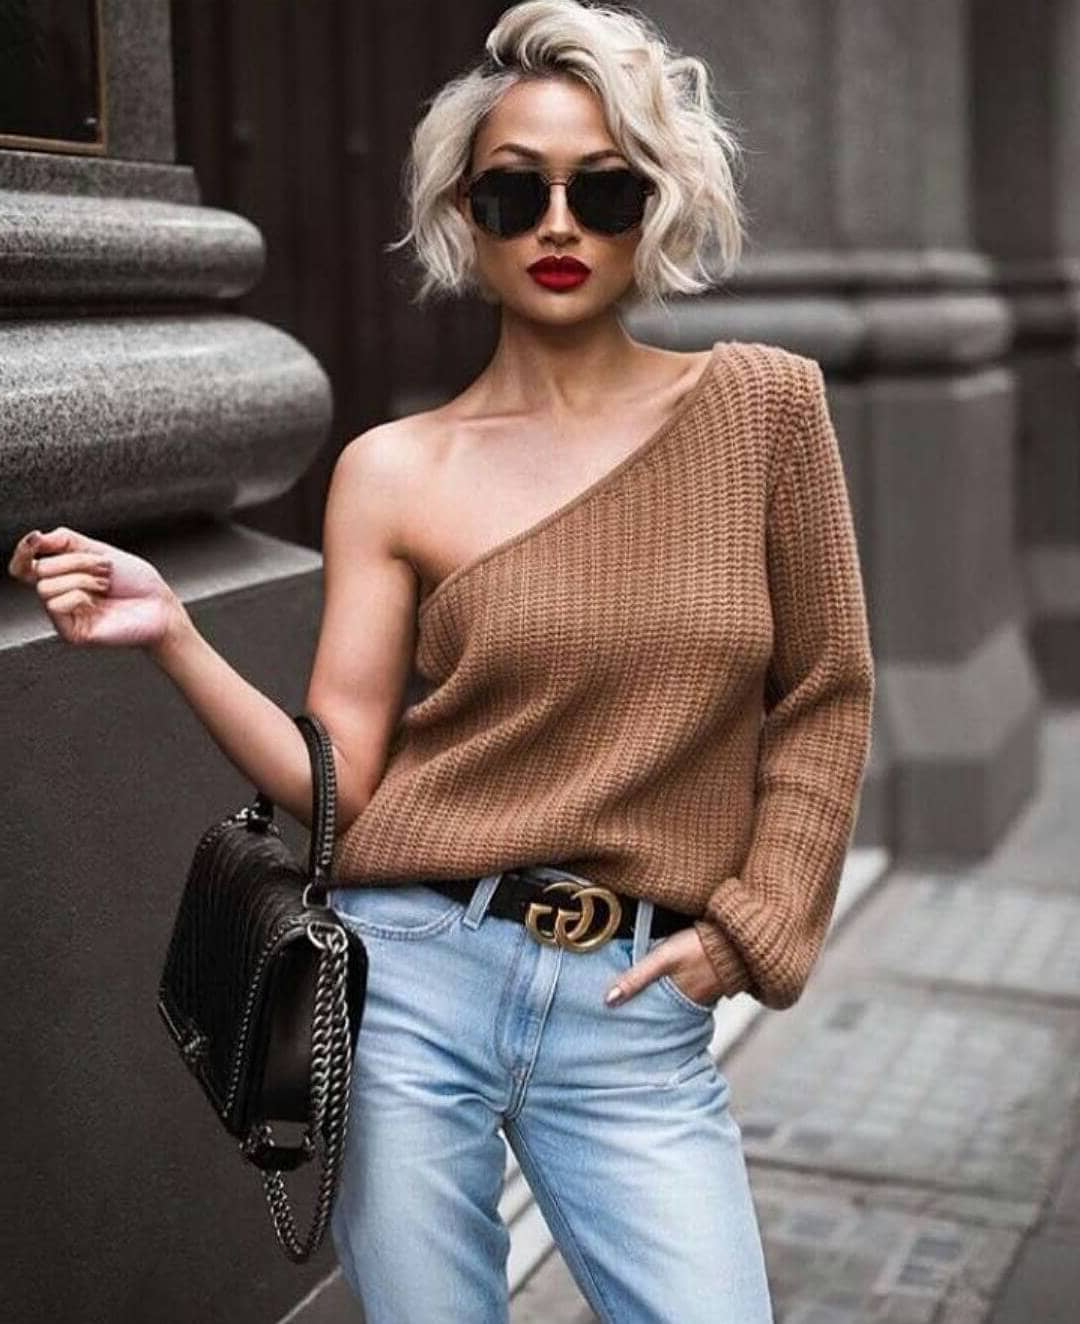 50 Fresh Short Blonde Hair Ideas To Update Your Style In 2019 Throughout Most Popular Short Platinum Blonde Bob Hairstyles (View 6 of 20)